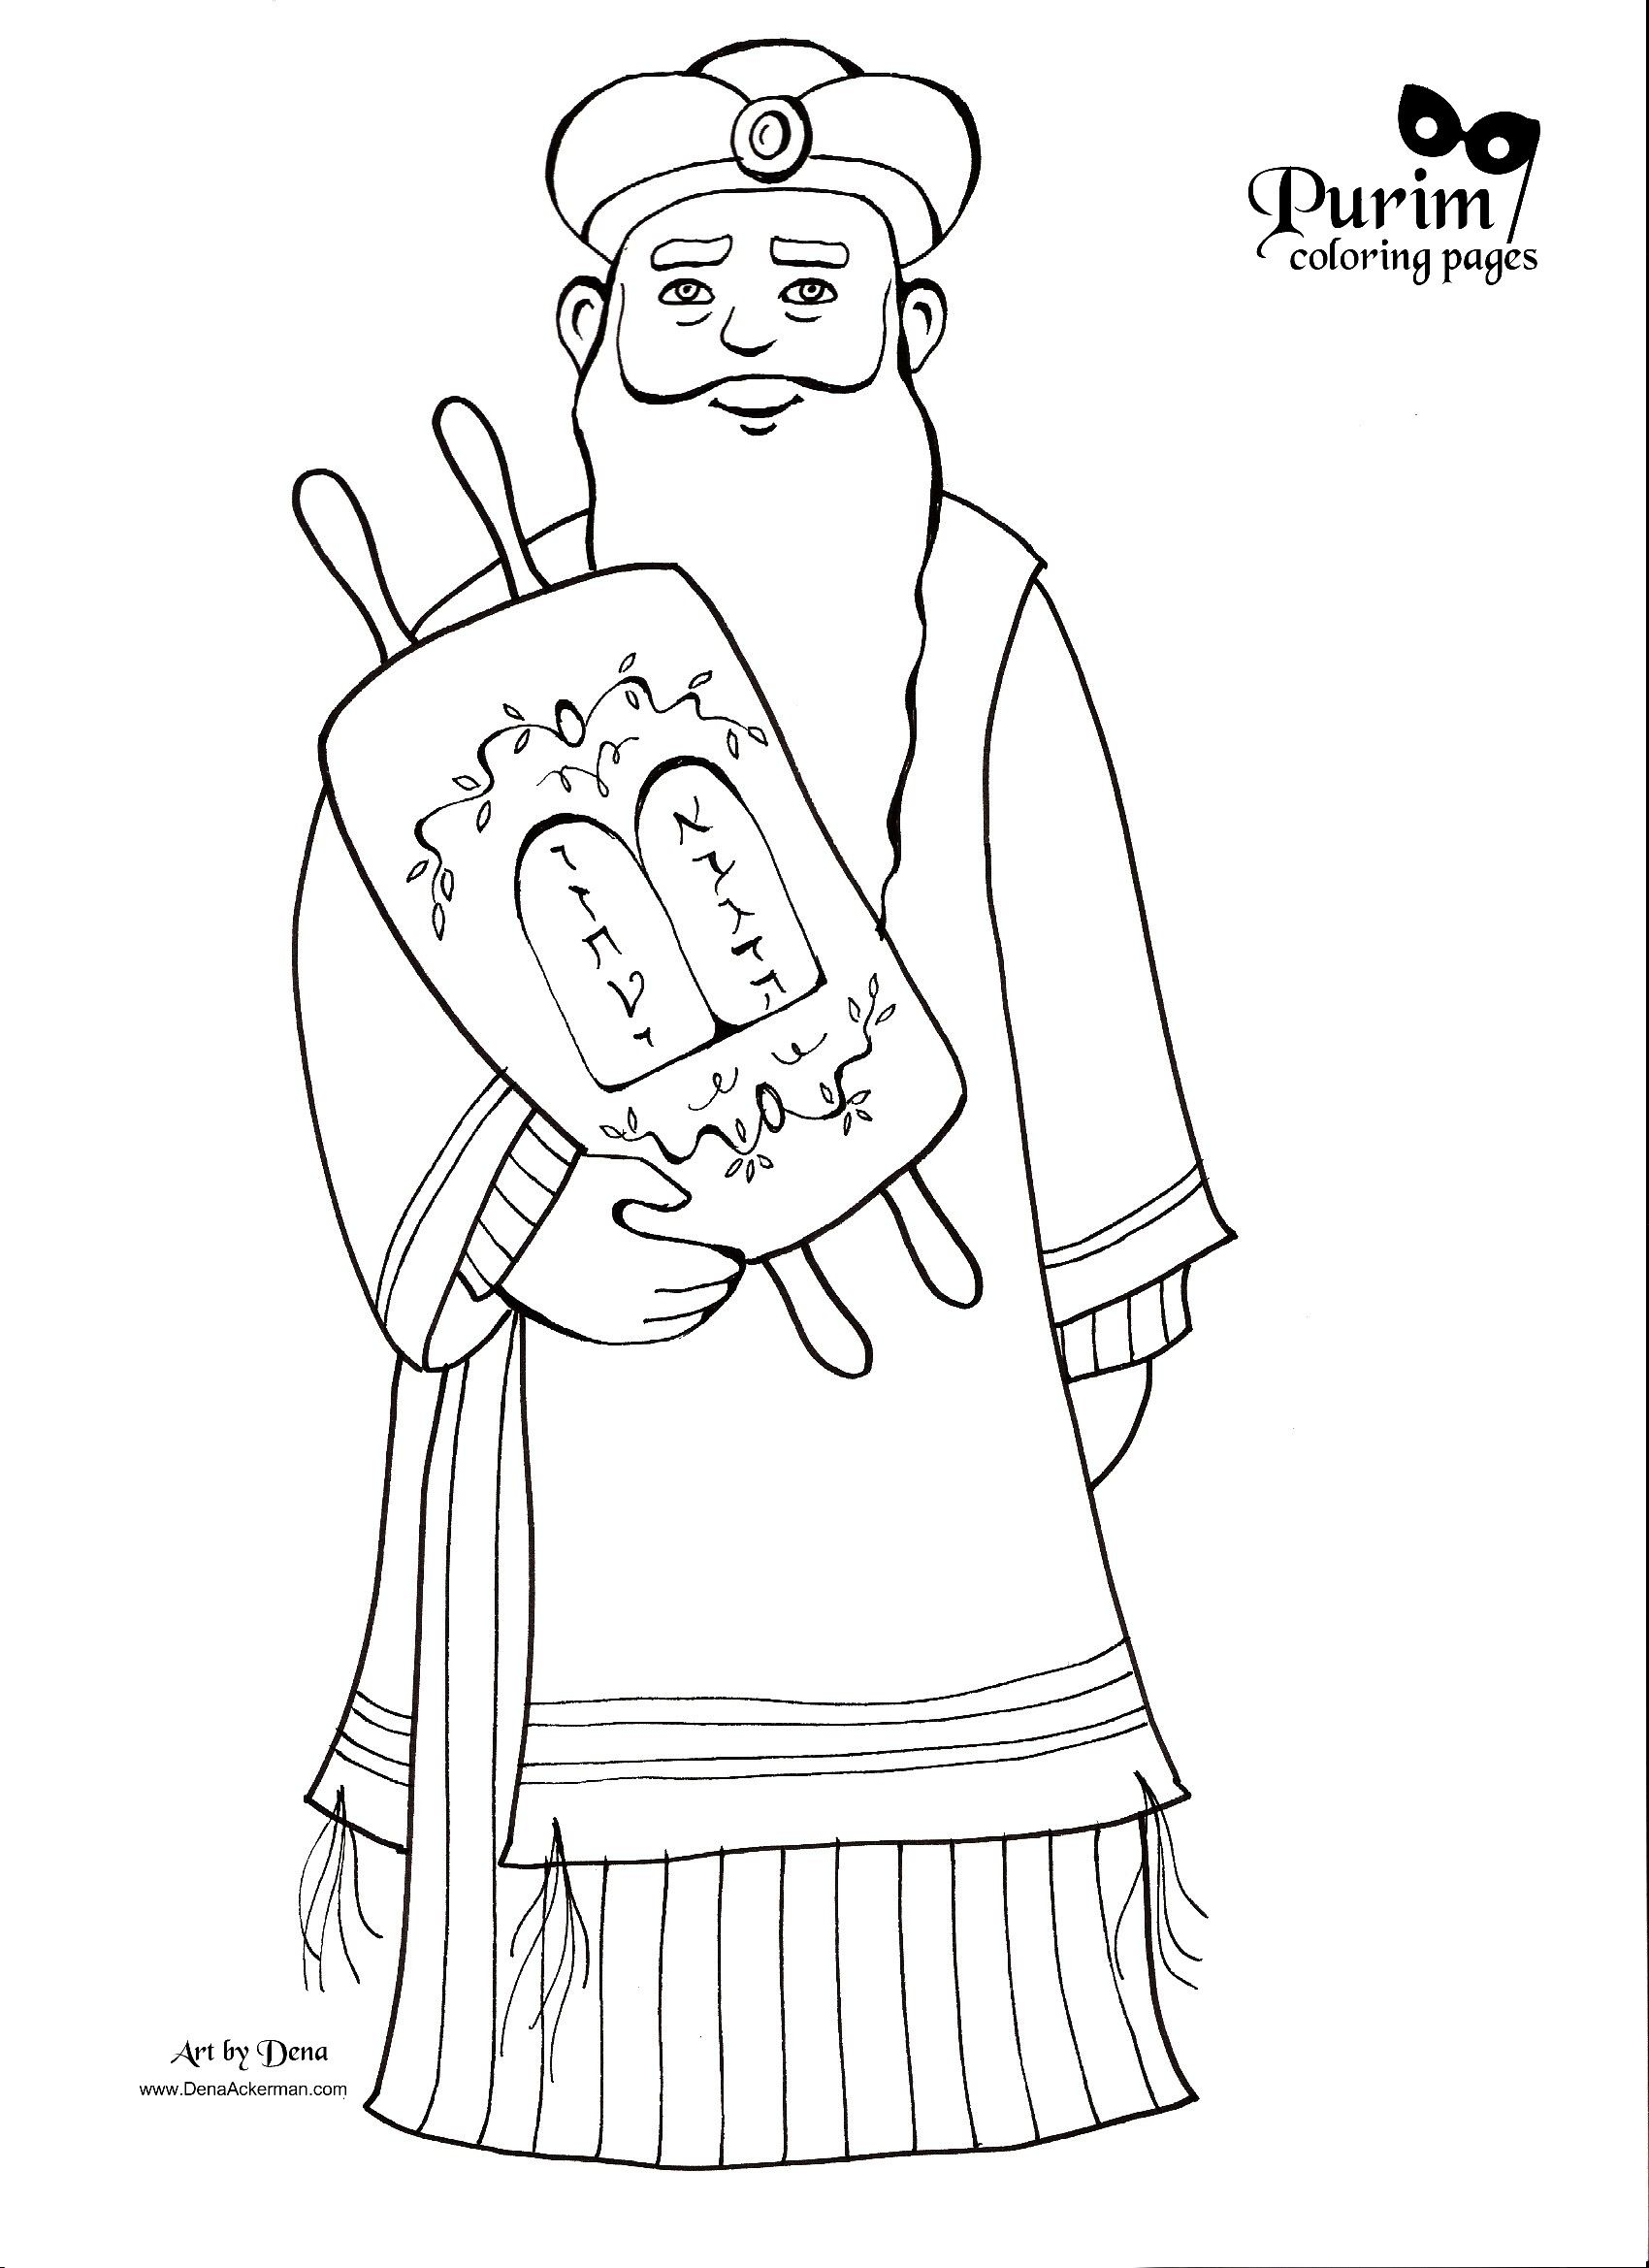 Free Coloring Purim Page From Jewishaartbyann Coloring Pages